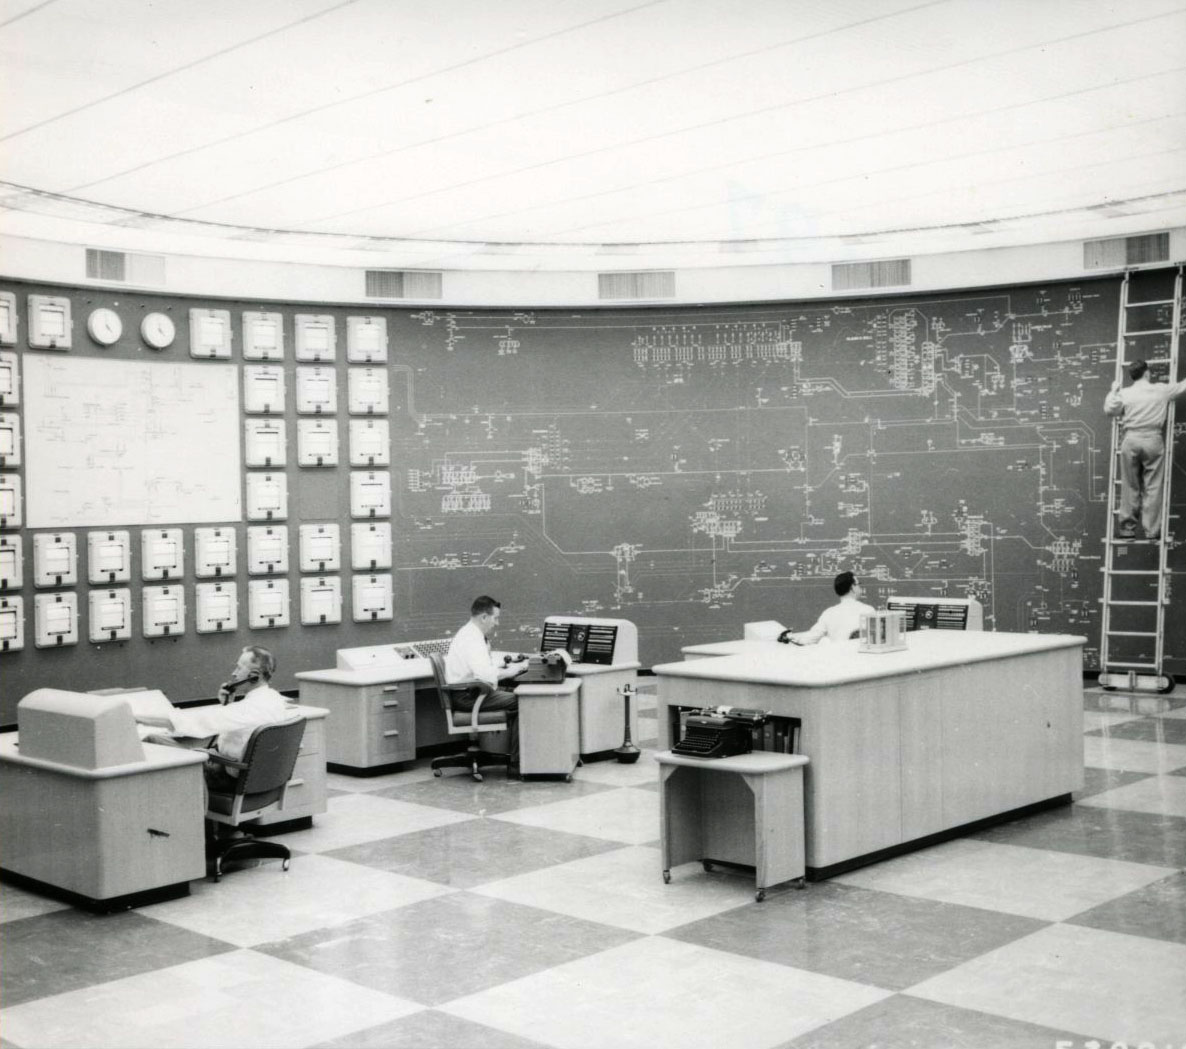 The BPA dispatching center, at Lloyd Blvd. building, 1955